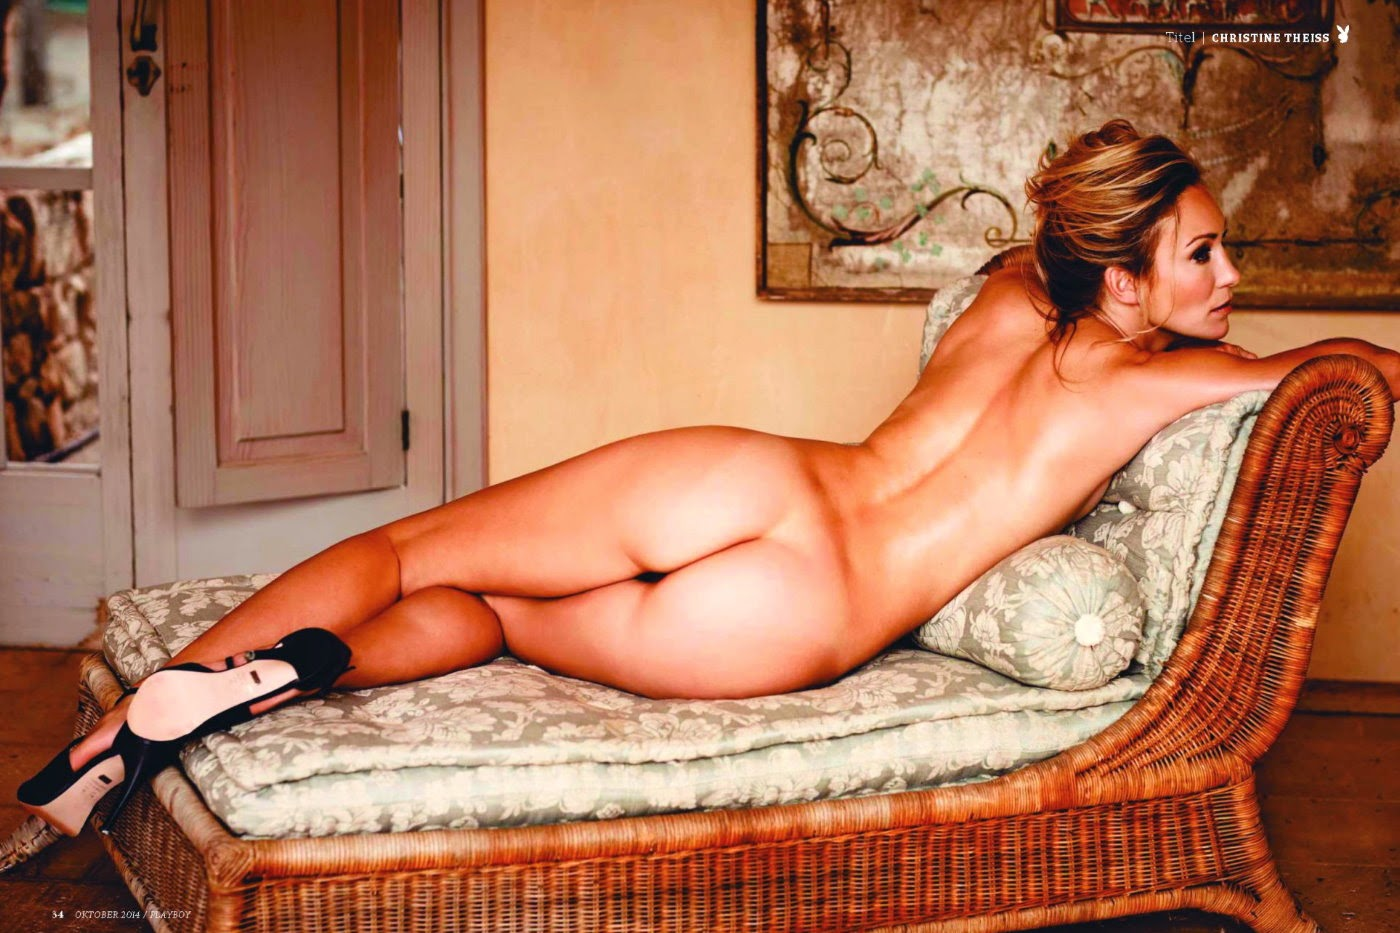 Christine Theiss Playboy 16.jpg - 231.54 KB